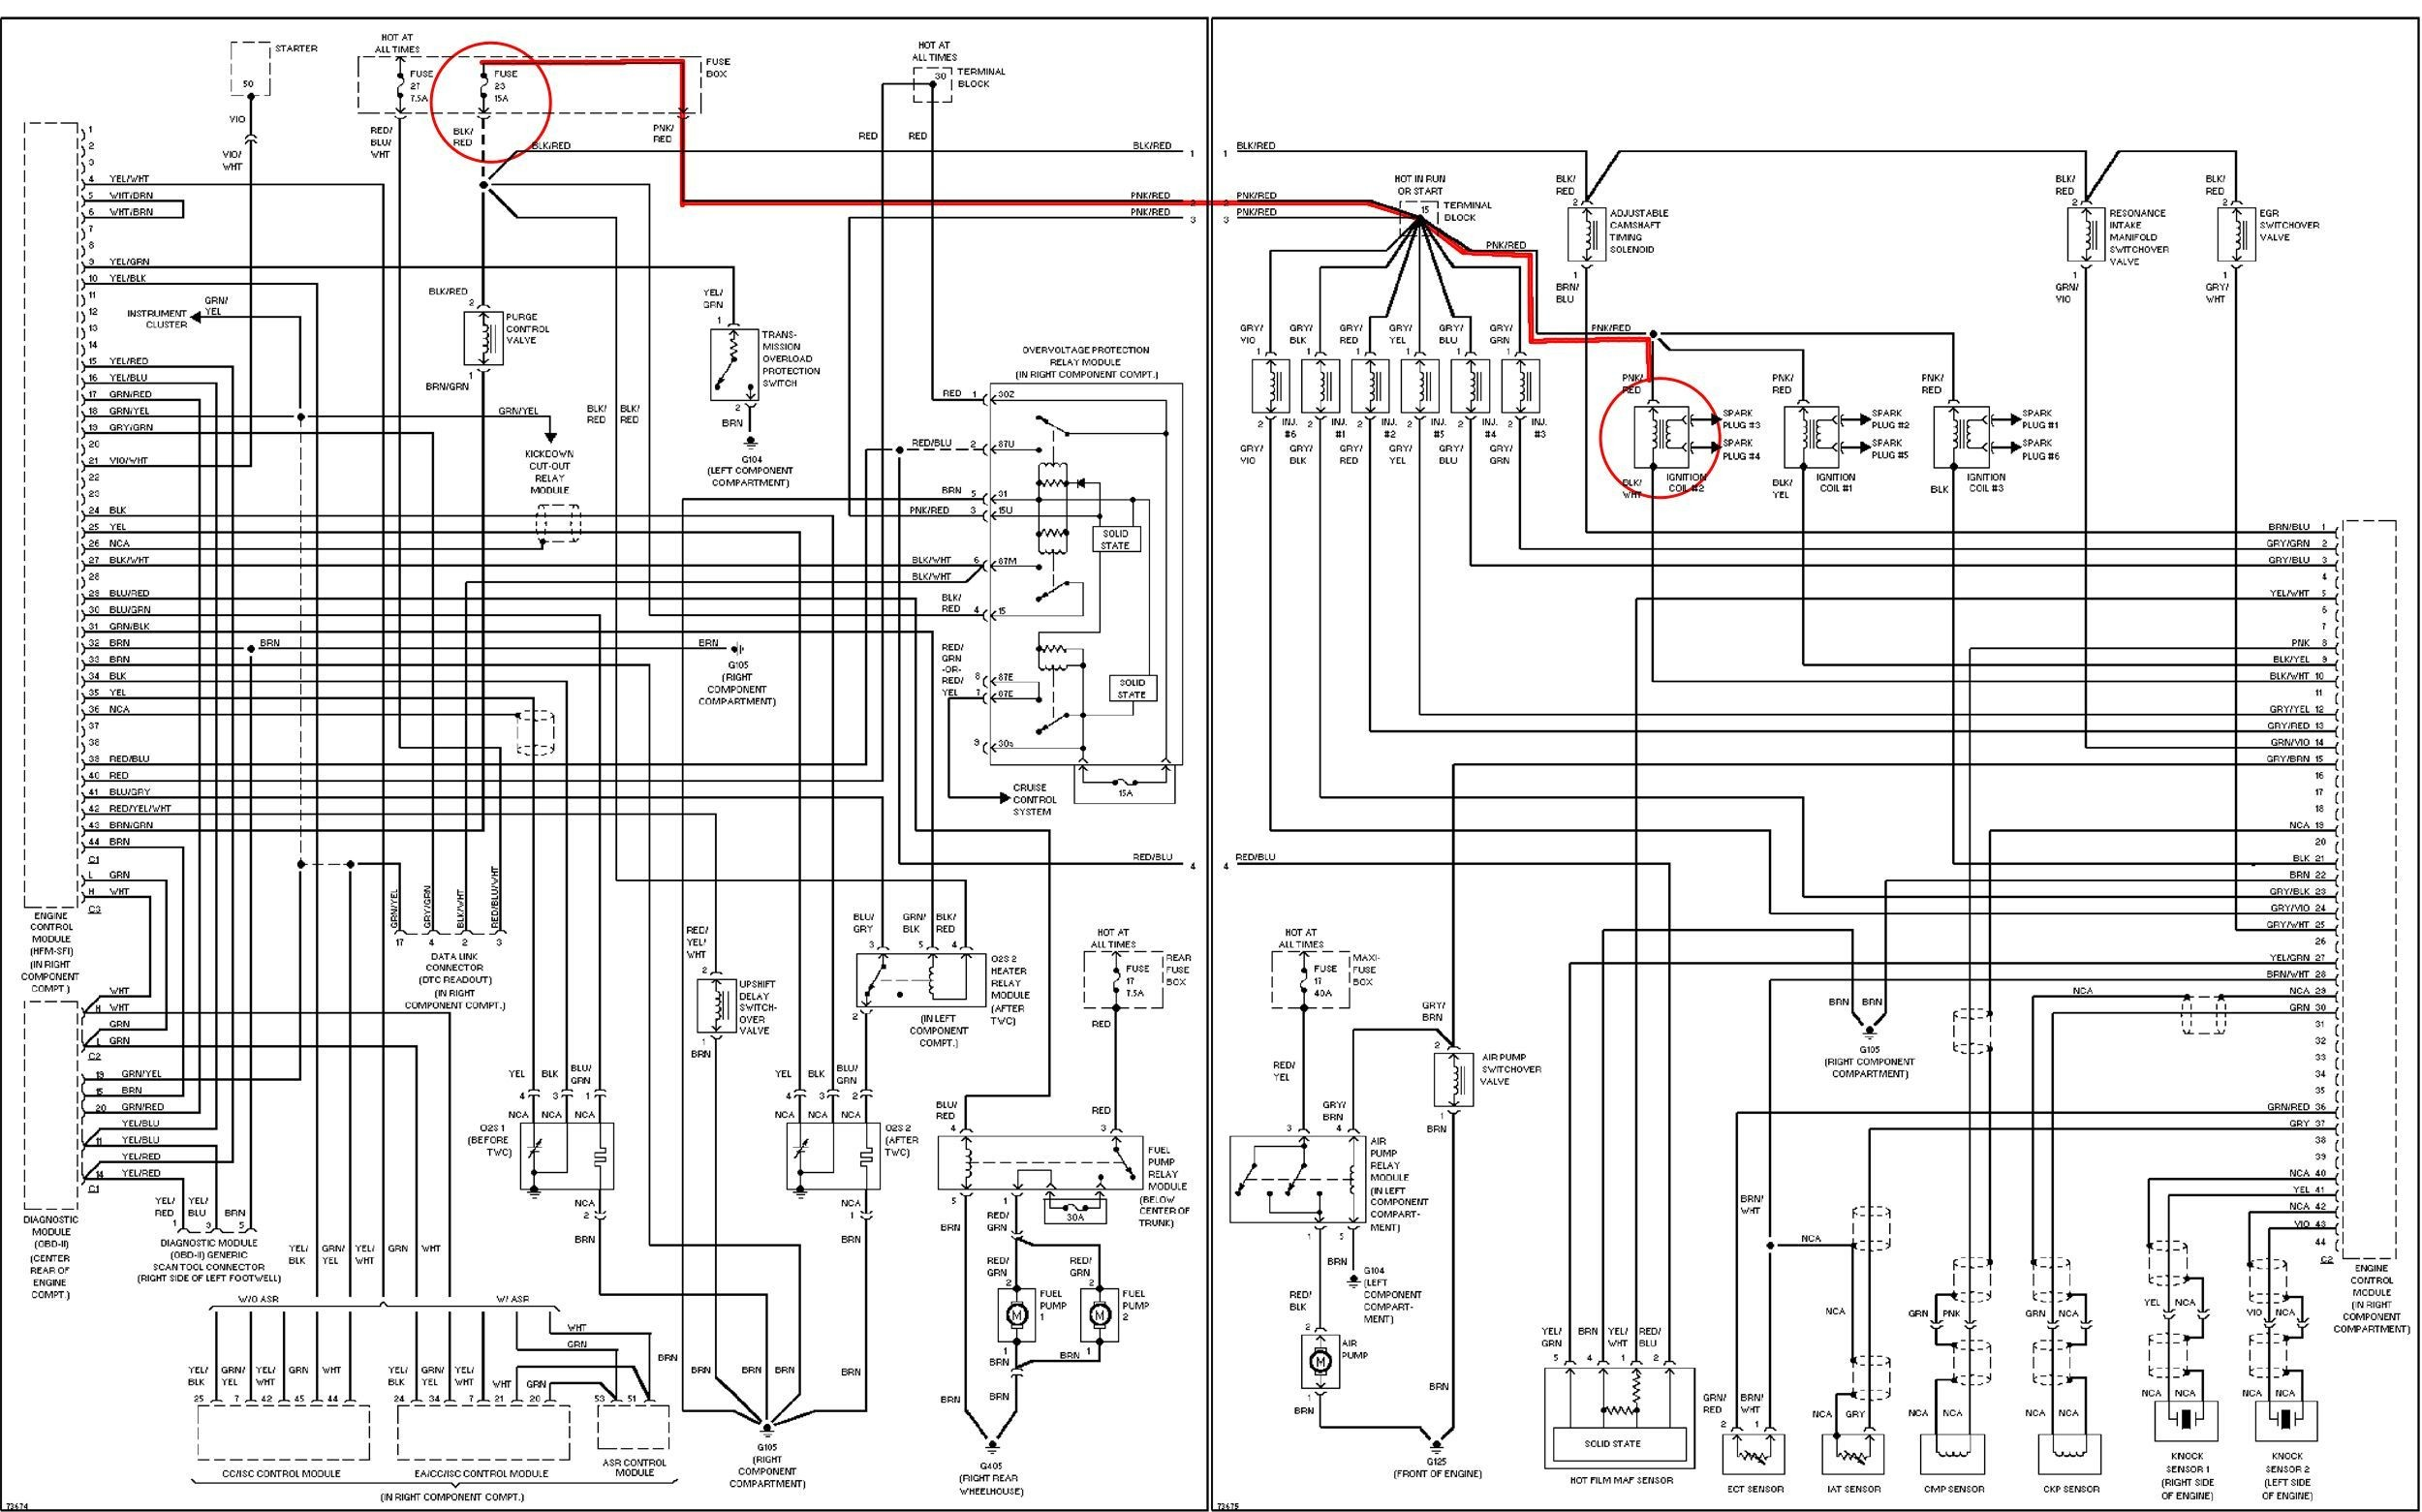 Mercedes Benz Engine Diagram Mercedes Benz Engine Schematics Trusted Wiring Diagrams • Of Mercedes Benz Engine Diagram Mercedes Benz Cruise Control Wiring Diagram Data Wiring Diagrams •